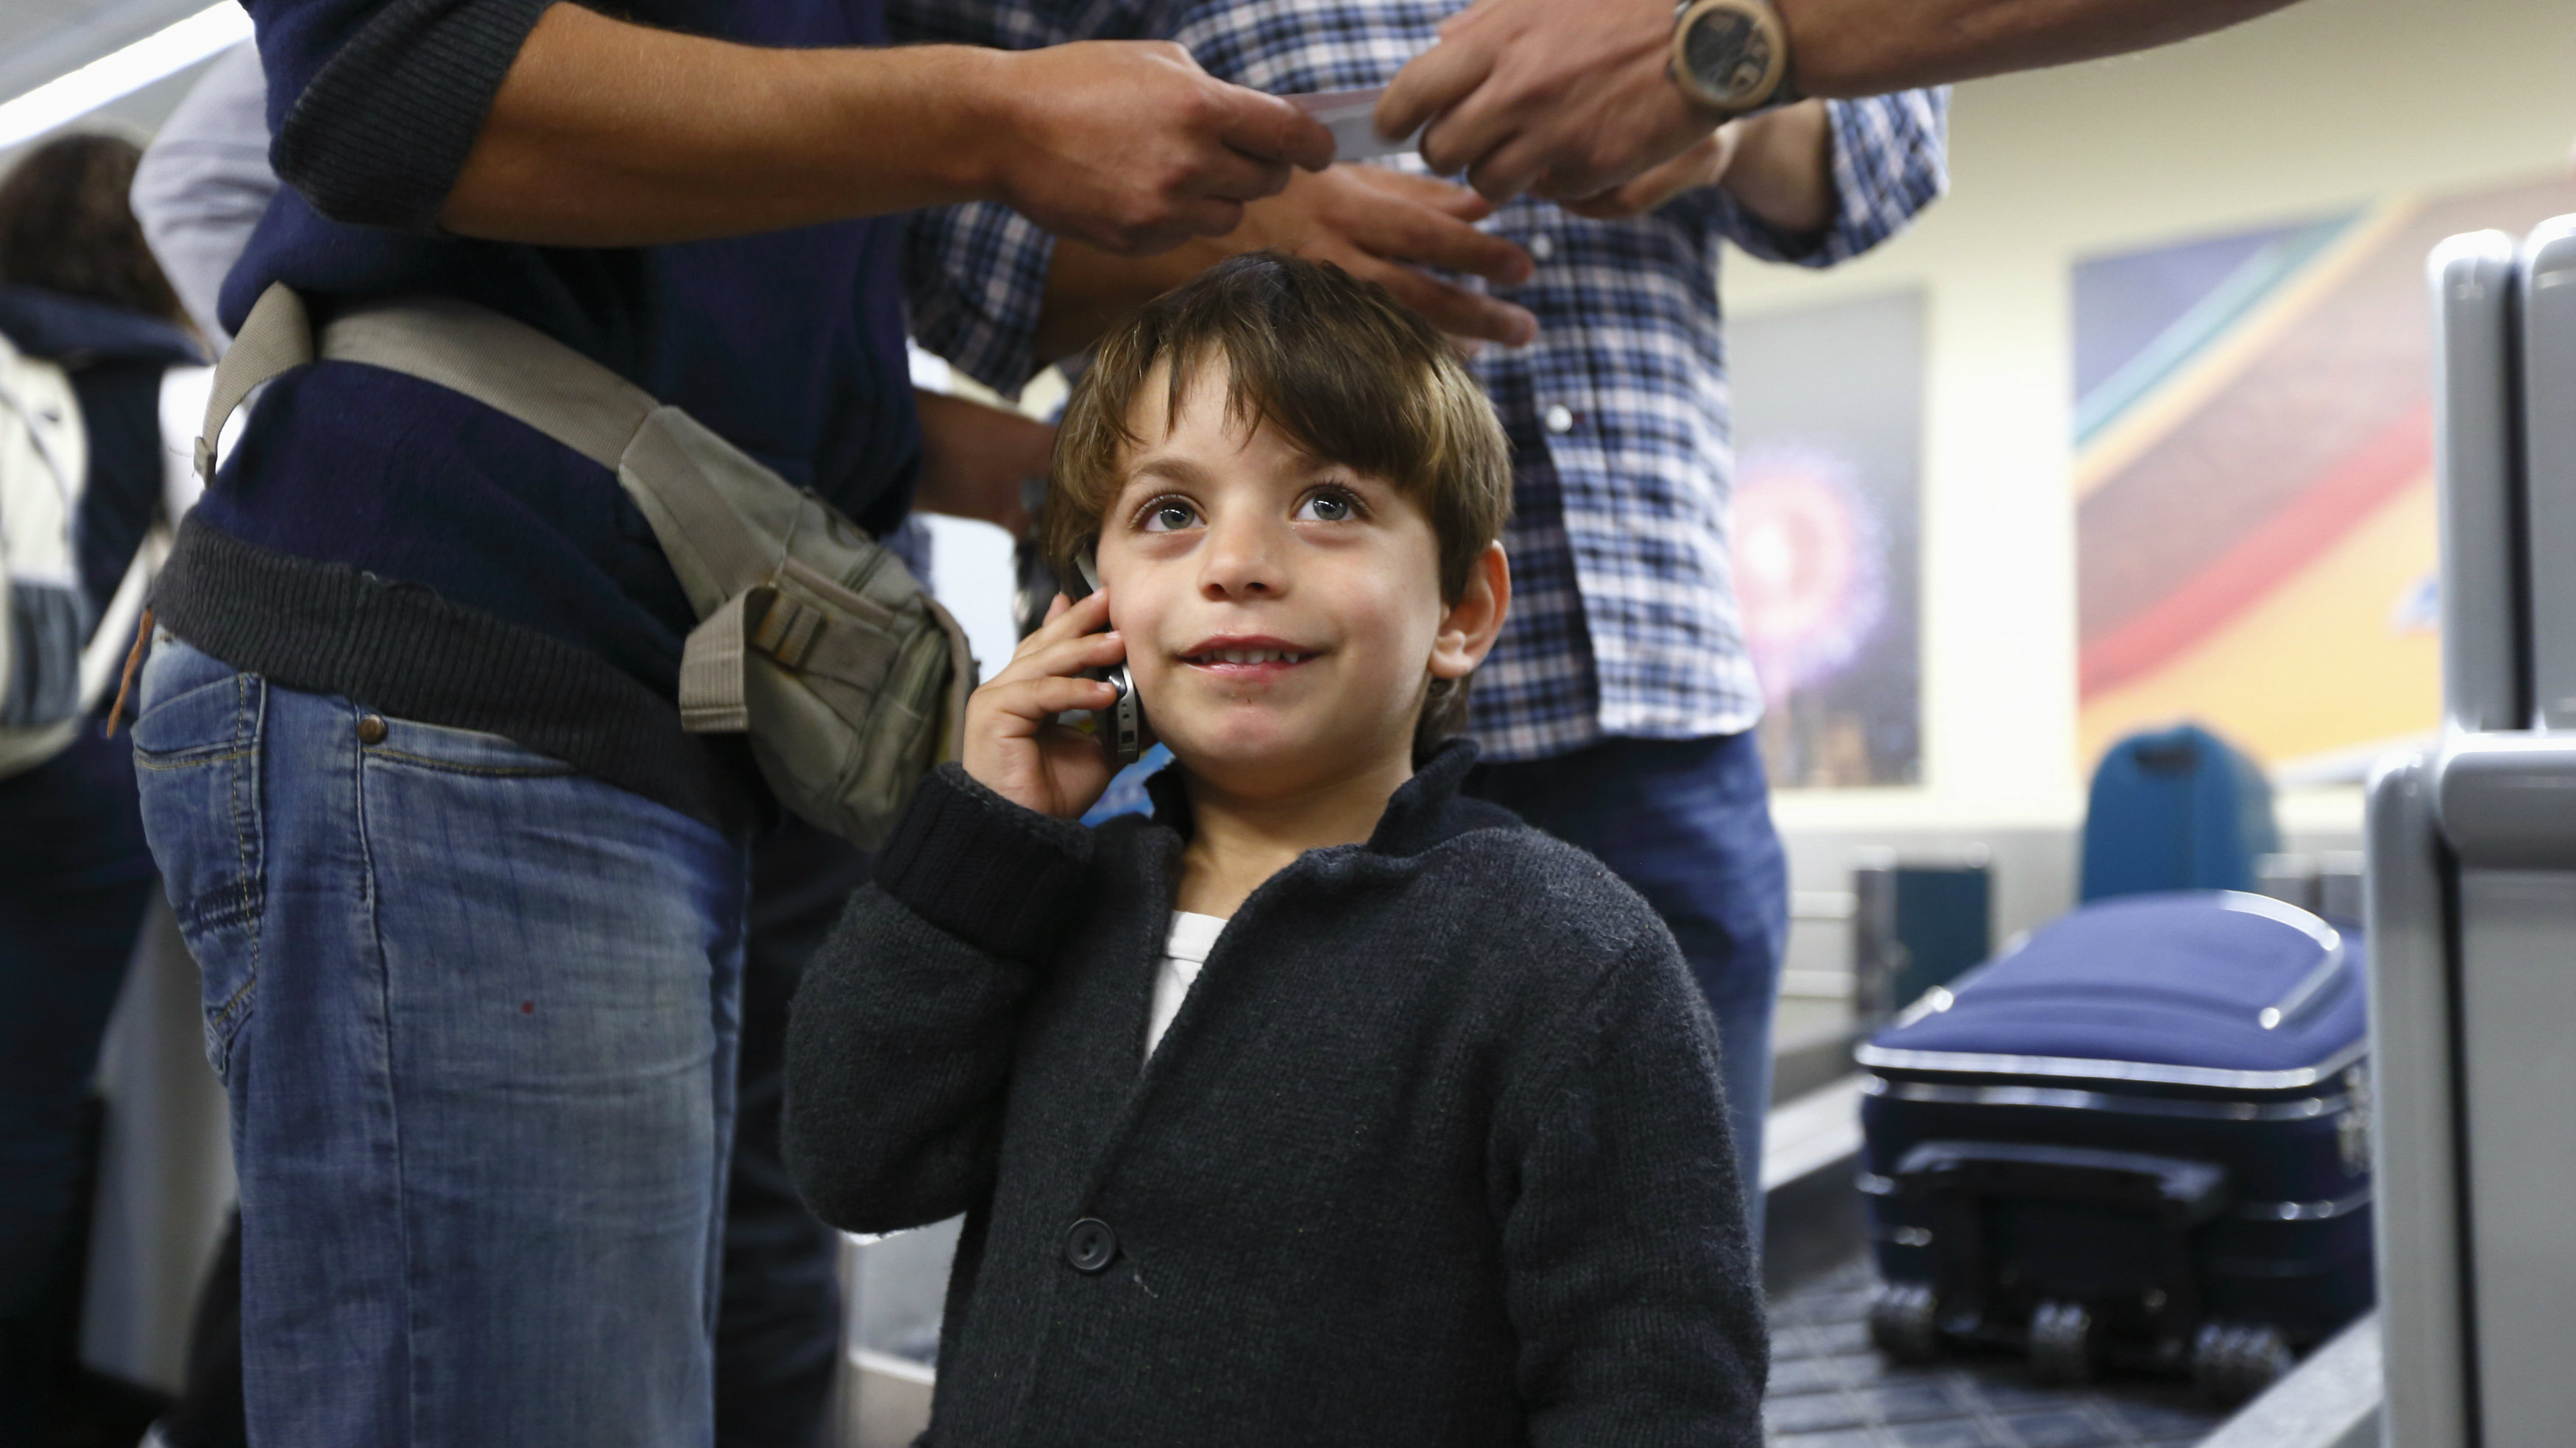 Syrian shipwreck survivor Haider, 4, talks on a phone as a police officer hands boarding passes to his father Hatim Shabar (L), after checking in for a flight to Sicily at Malta International Airport outside Valletta November 6, 2013. Both refugees were rescued and brought to Malta after their boat capsized 60 miles south of Lampedusa last month, leaving between 50 and 200 Syrian and Palestinian migrants dead, according to local media. They will be reunited with Haider's seven-year-old brother, who had been taken to Lampedusa after the shipwreck, in Sicily later today, according to the UNHCR. His two other brothers and mother remain missing, believed drowned.  REUTERS/Darrin Zammit Lupi (MALTA - Tags: SOCIETY IMMIGRATION DISASTER) MALTA OUT. NO COMMERCIAL OR EDITORIAL SALES IN MALTA